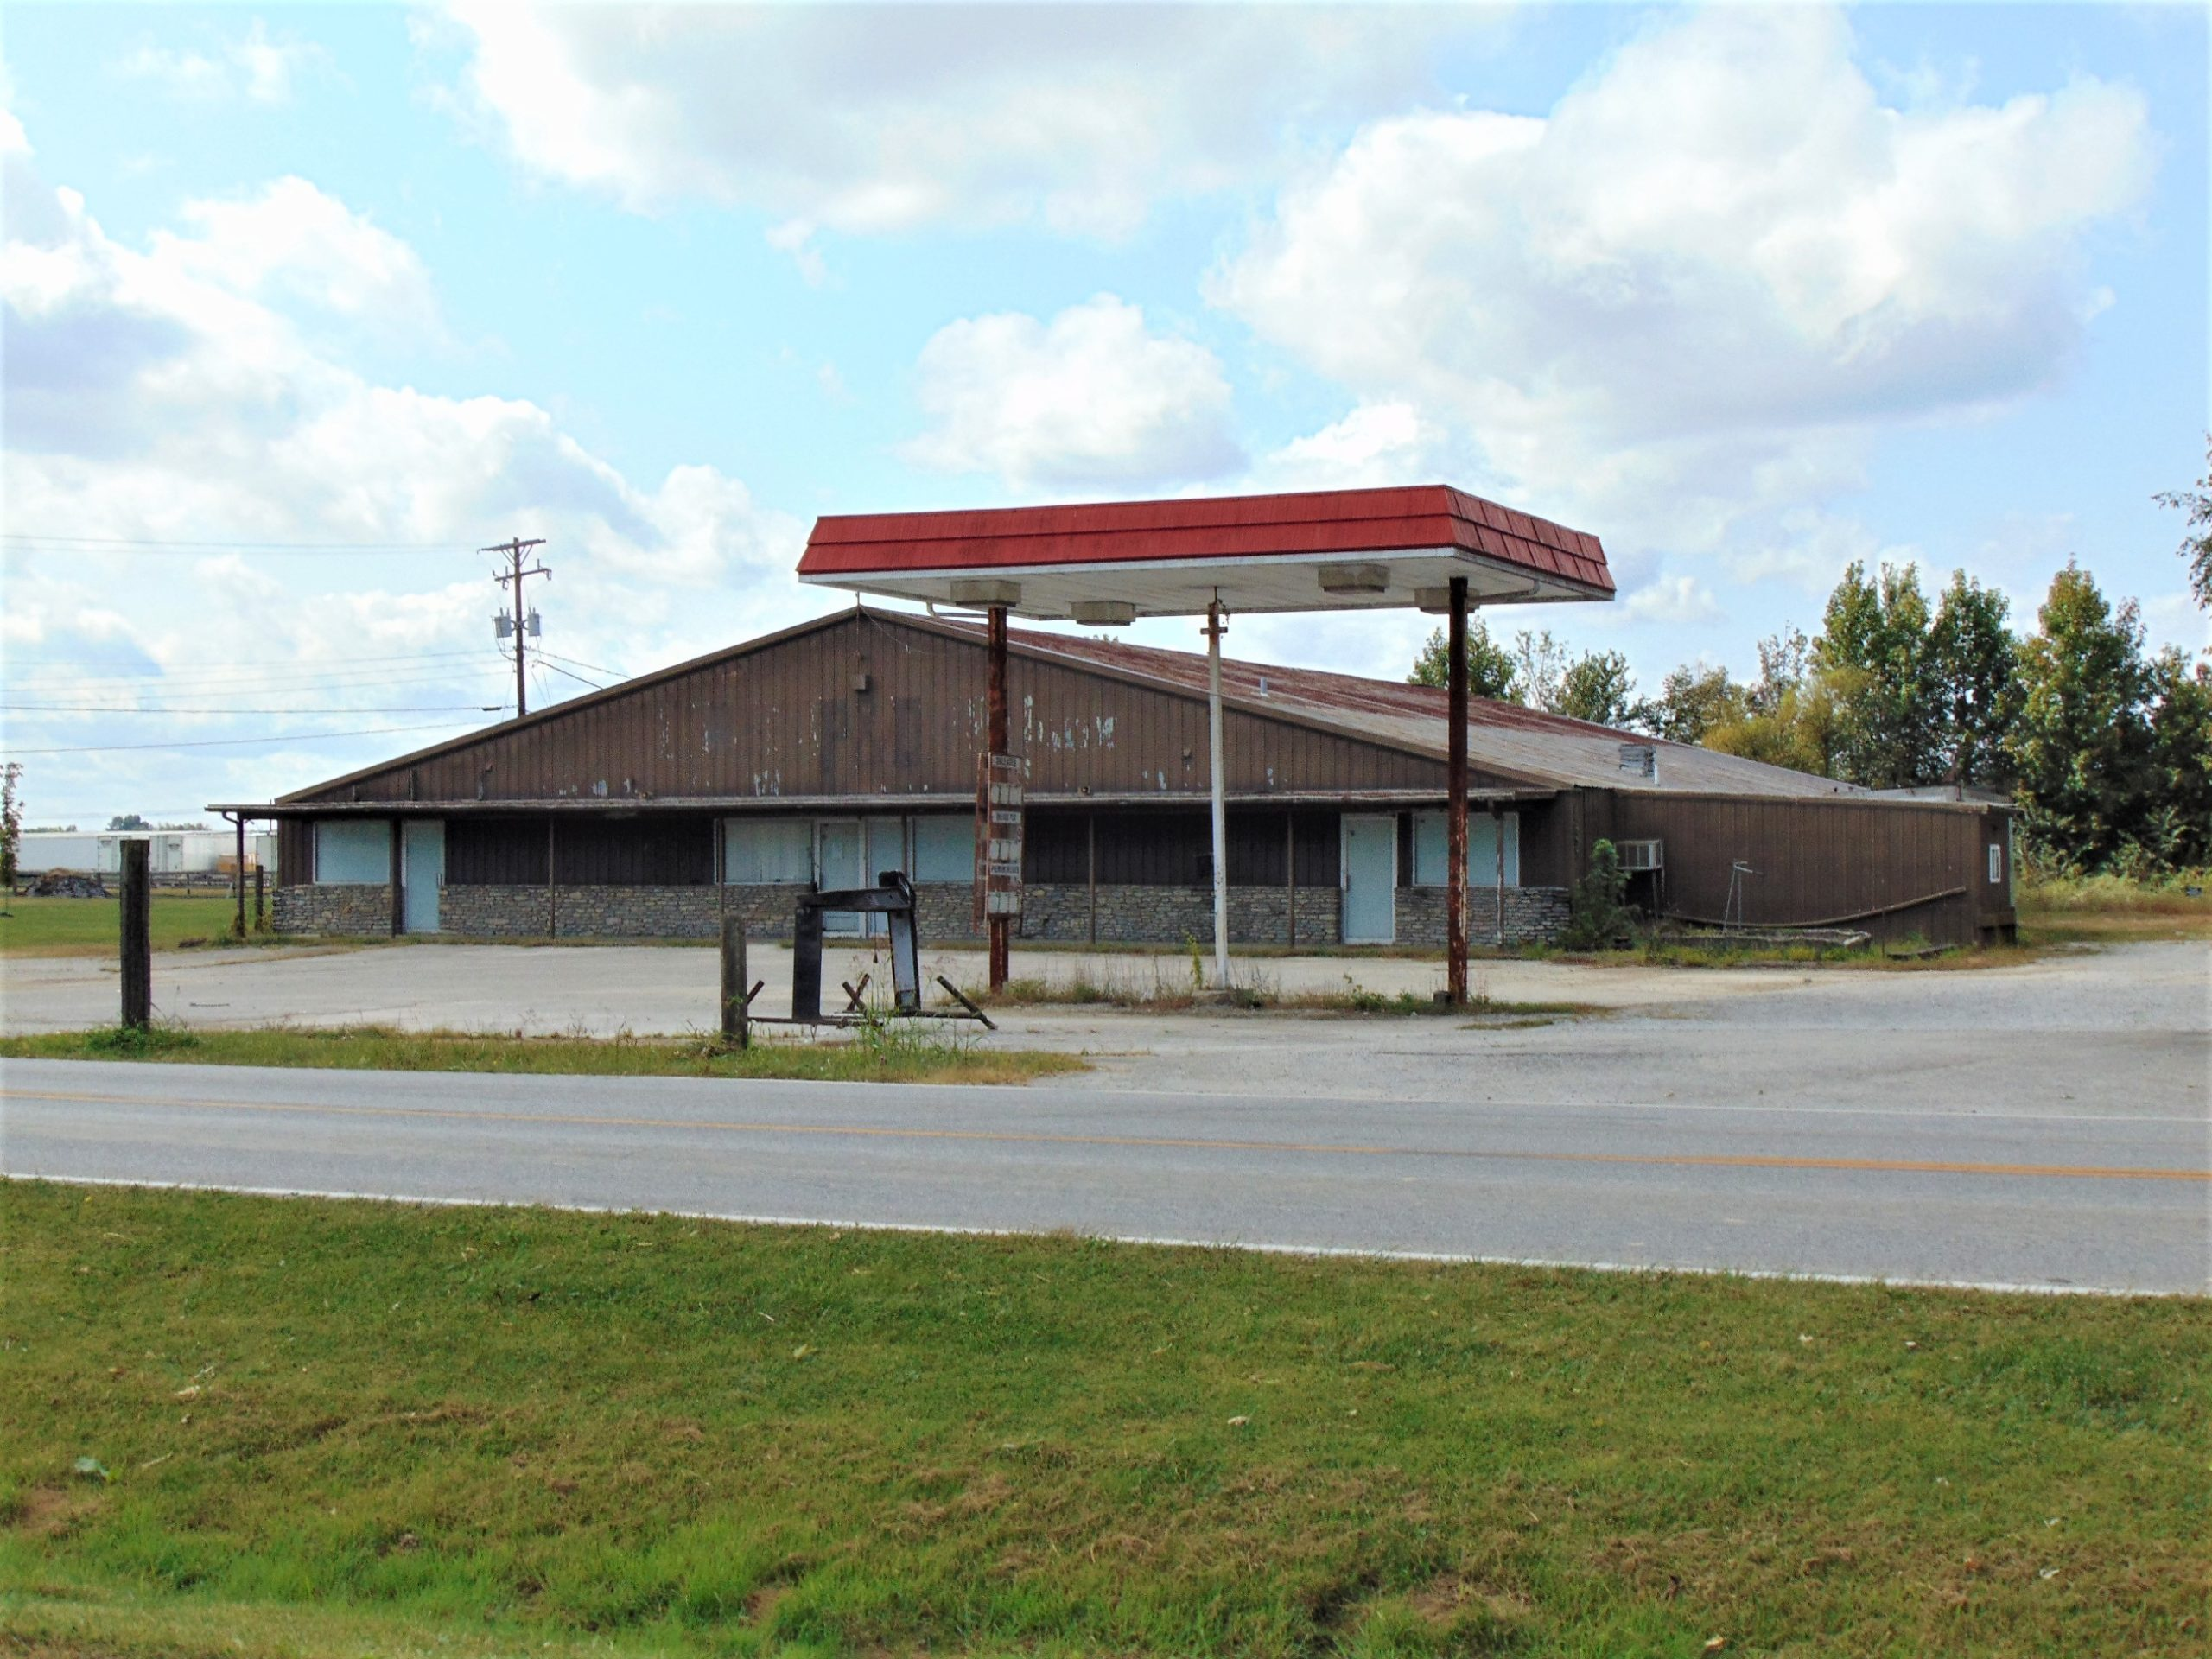 Commercial Building 9340 N. Loretto Road – Loretto